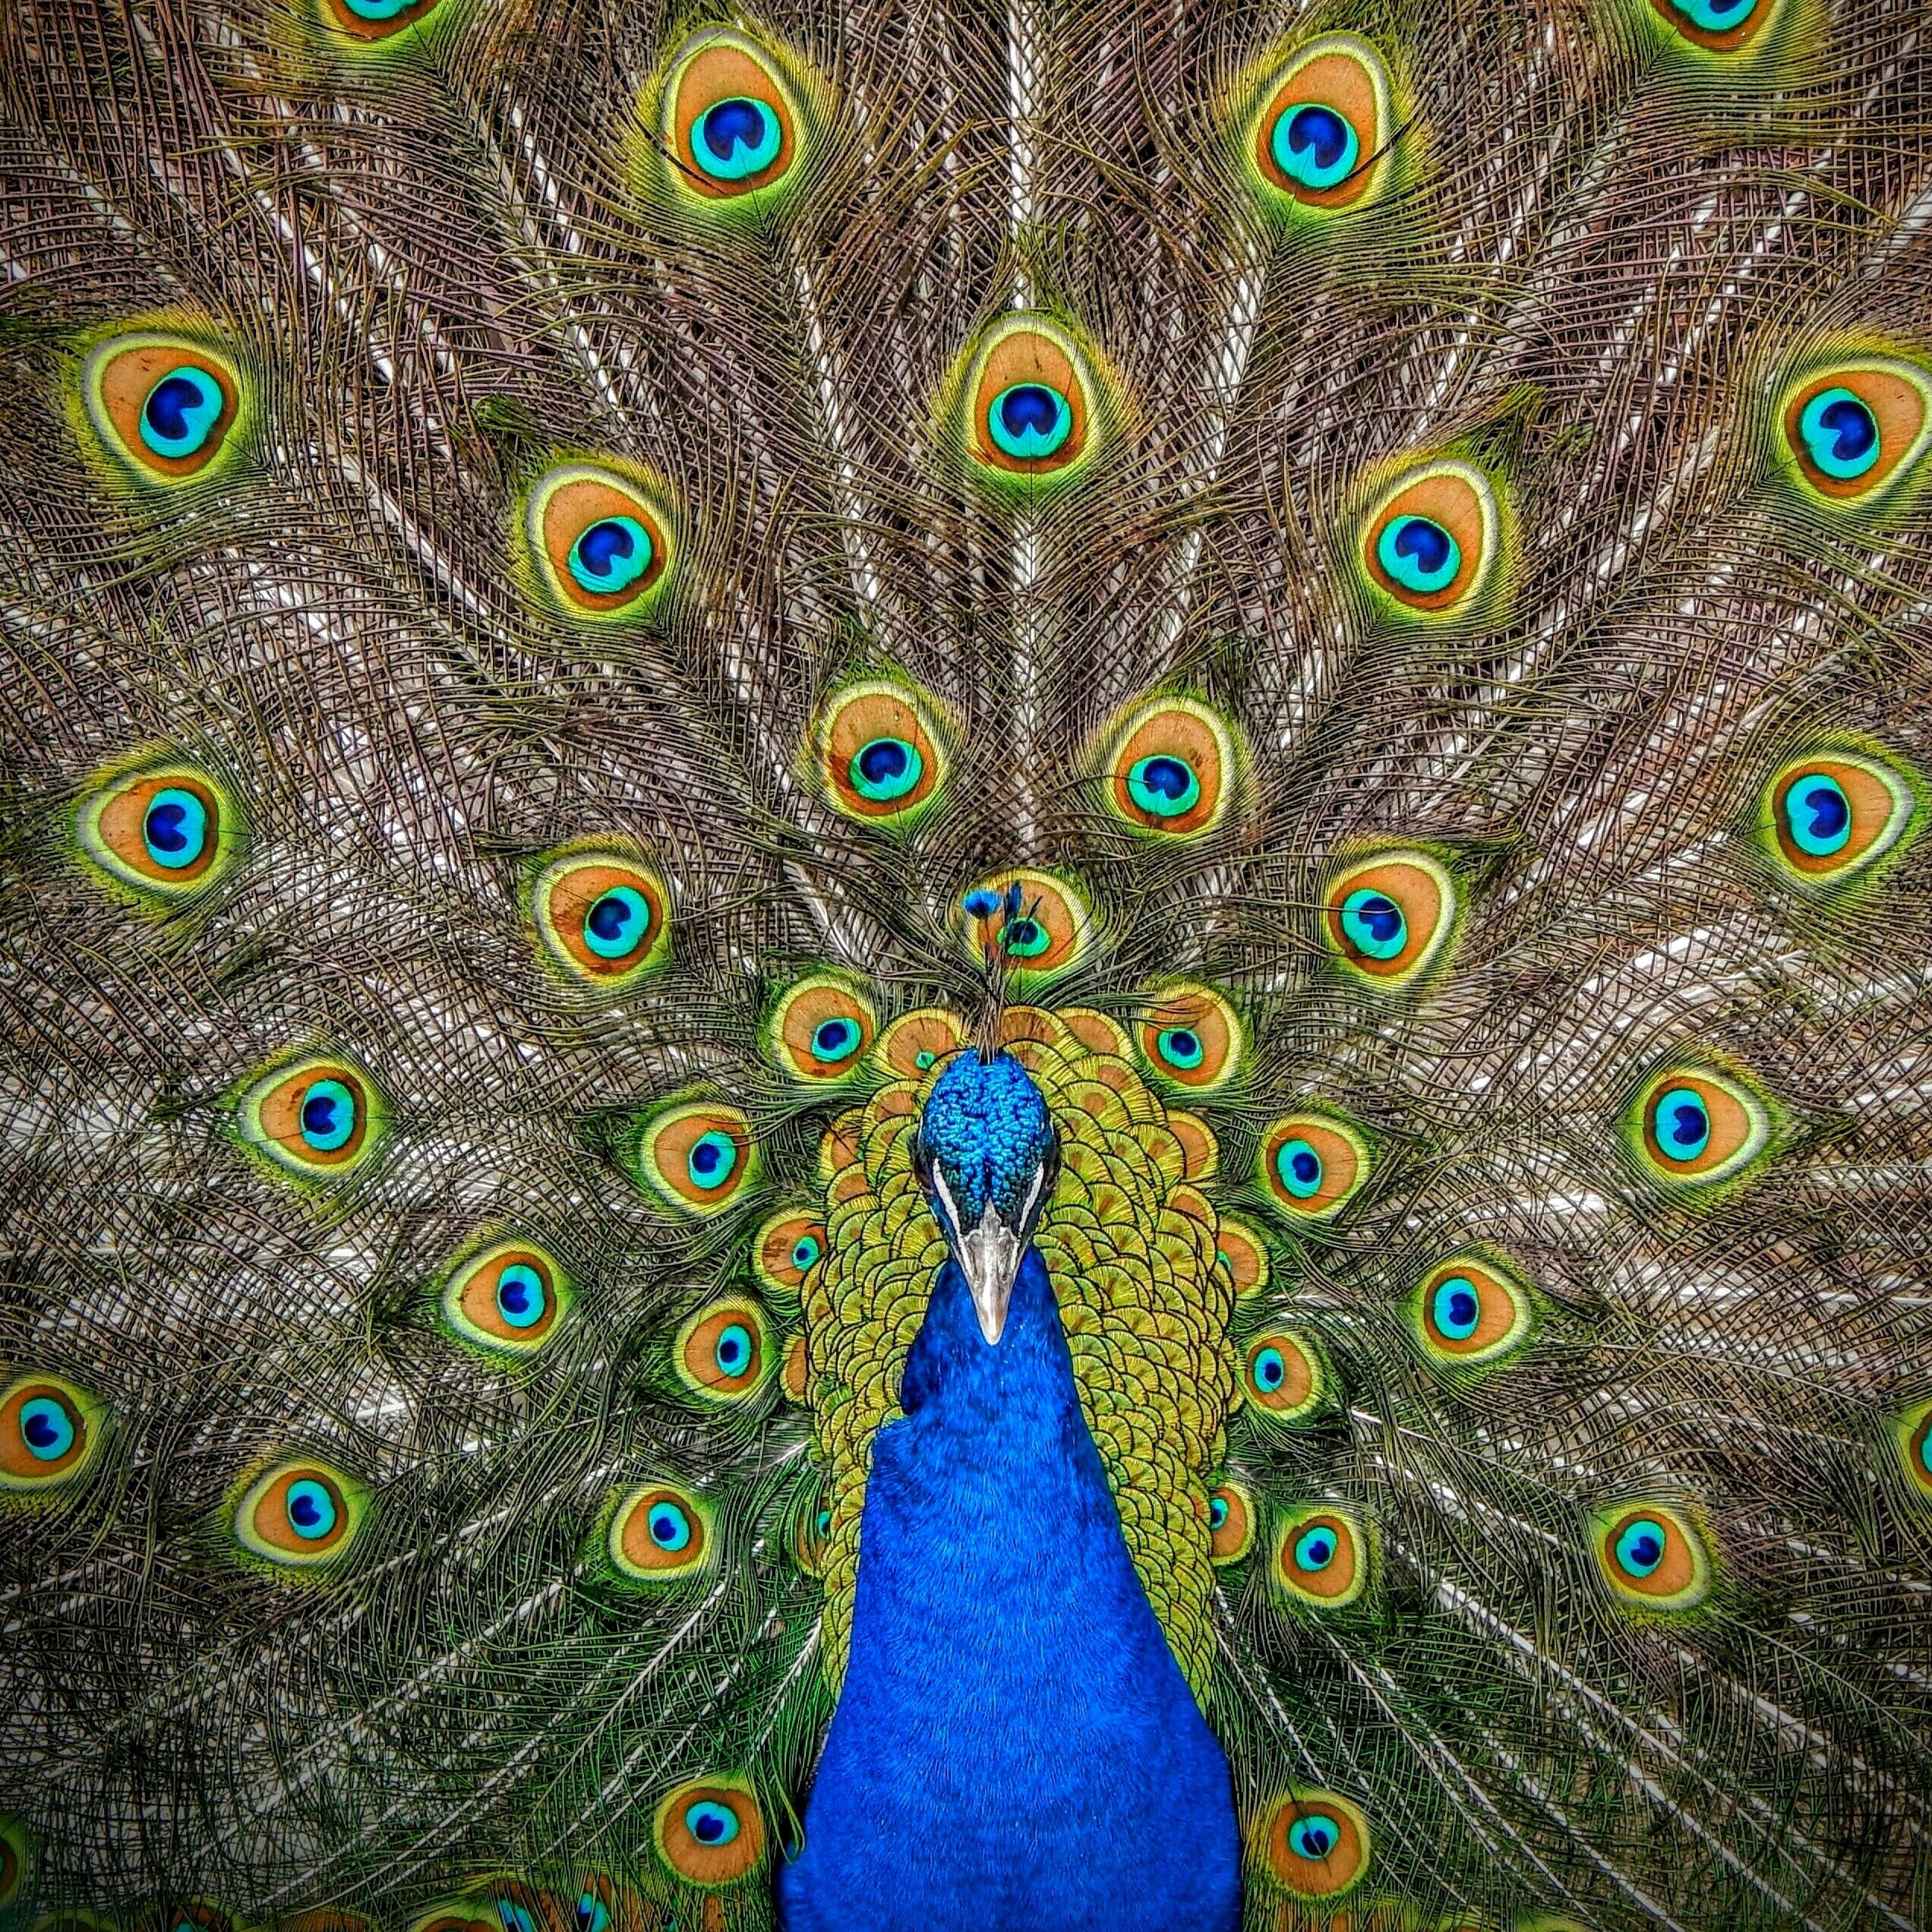 beautiful peacock shows off his feathers